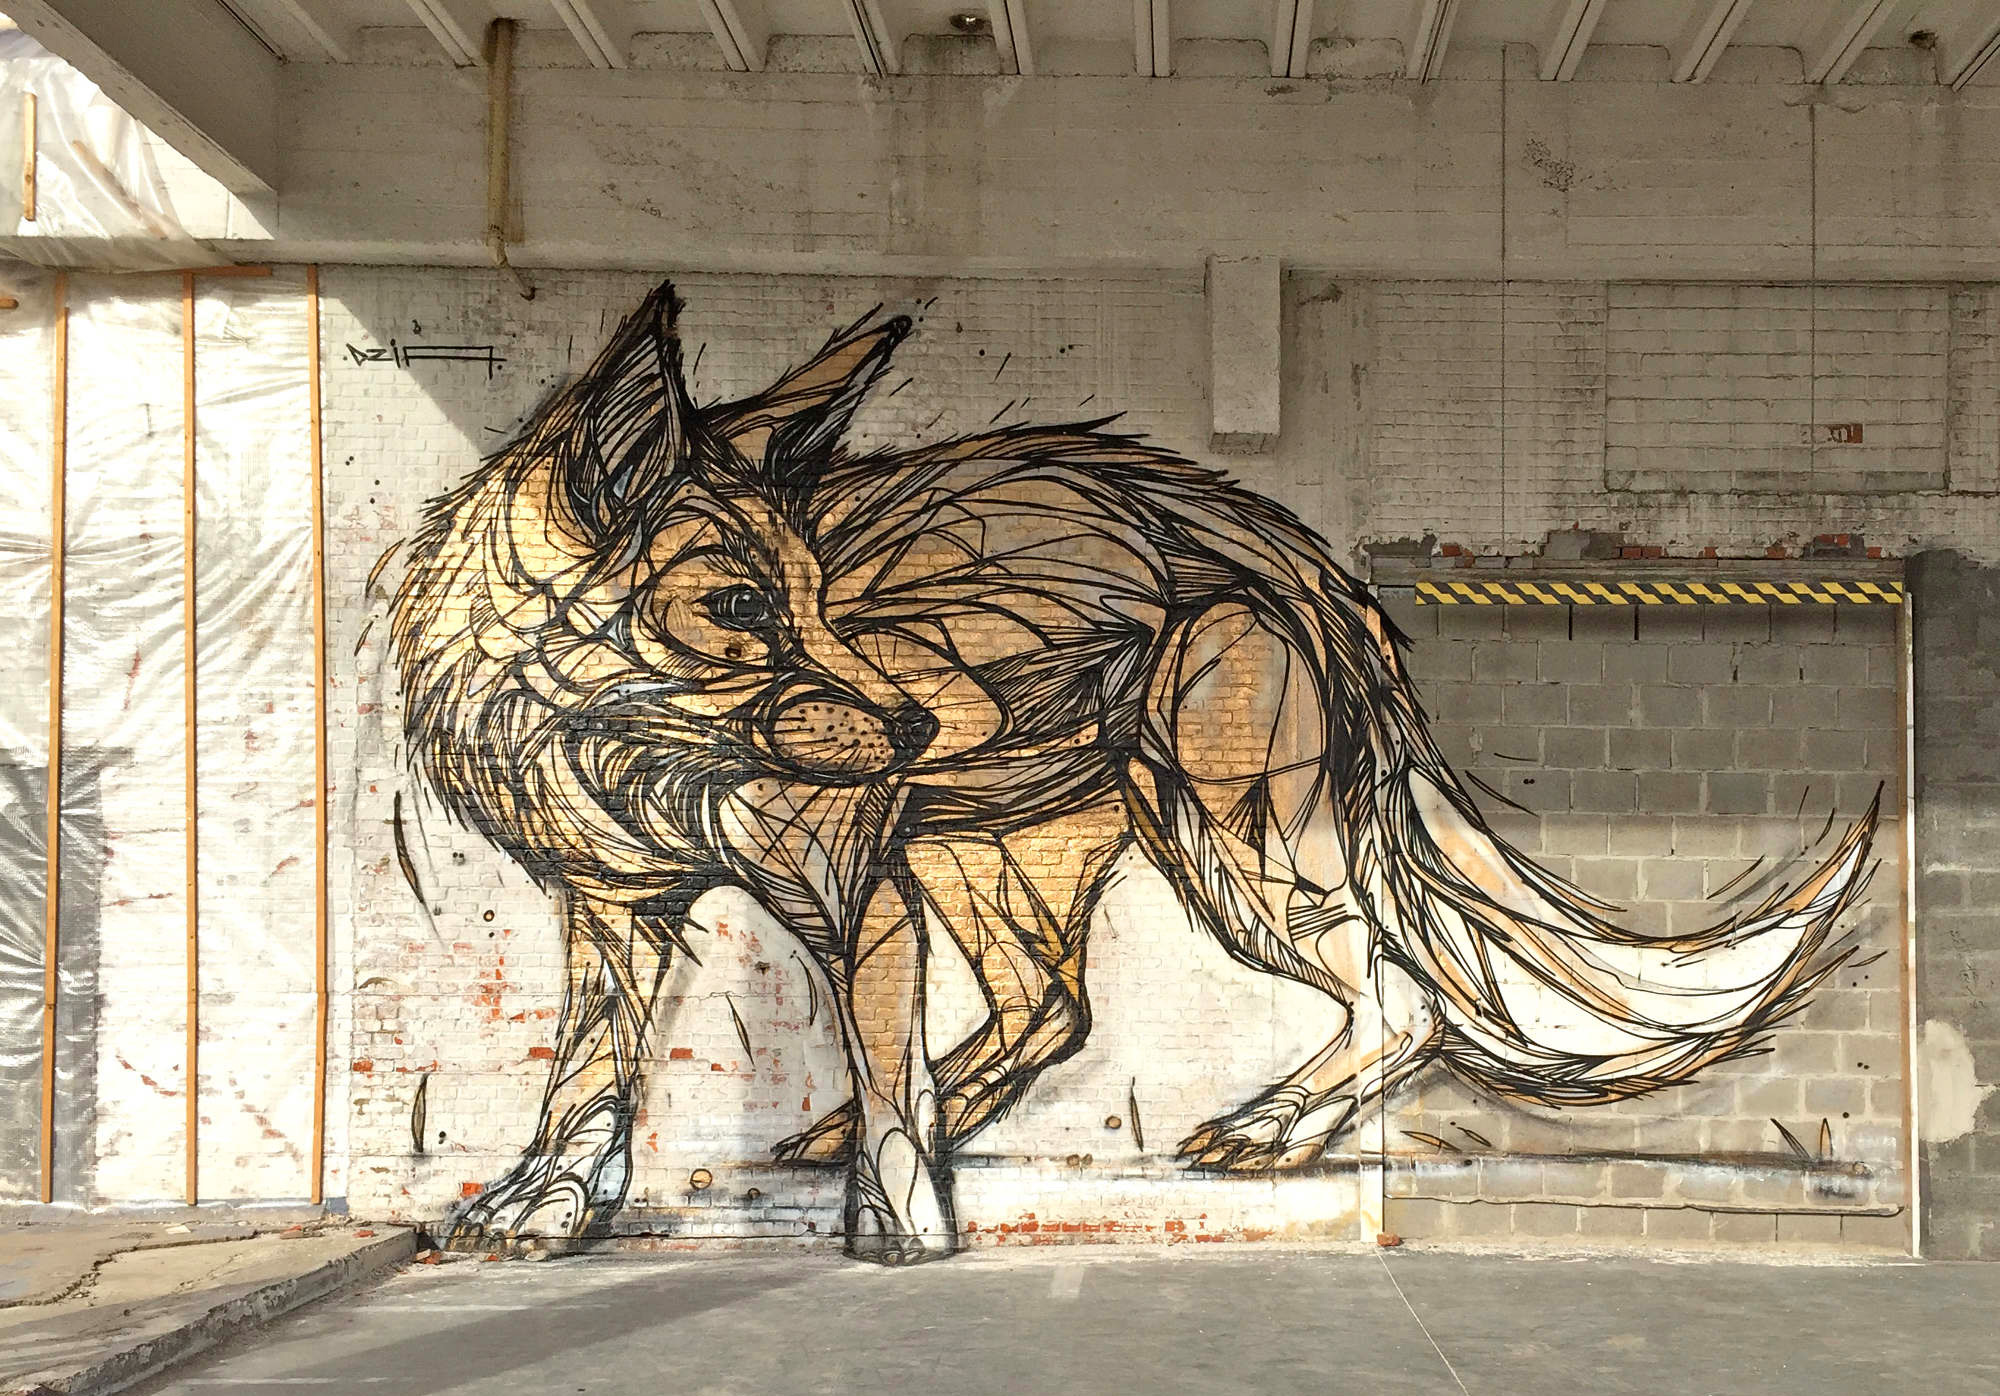 Graffiti art animals -  Graffiti Of Animals And Insects On The Streets Of Antwerp By Dzia 8